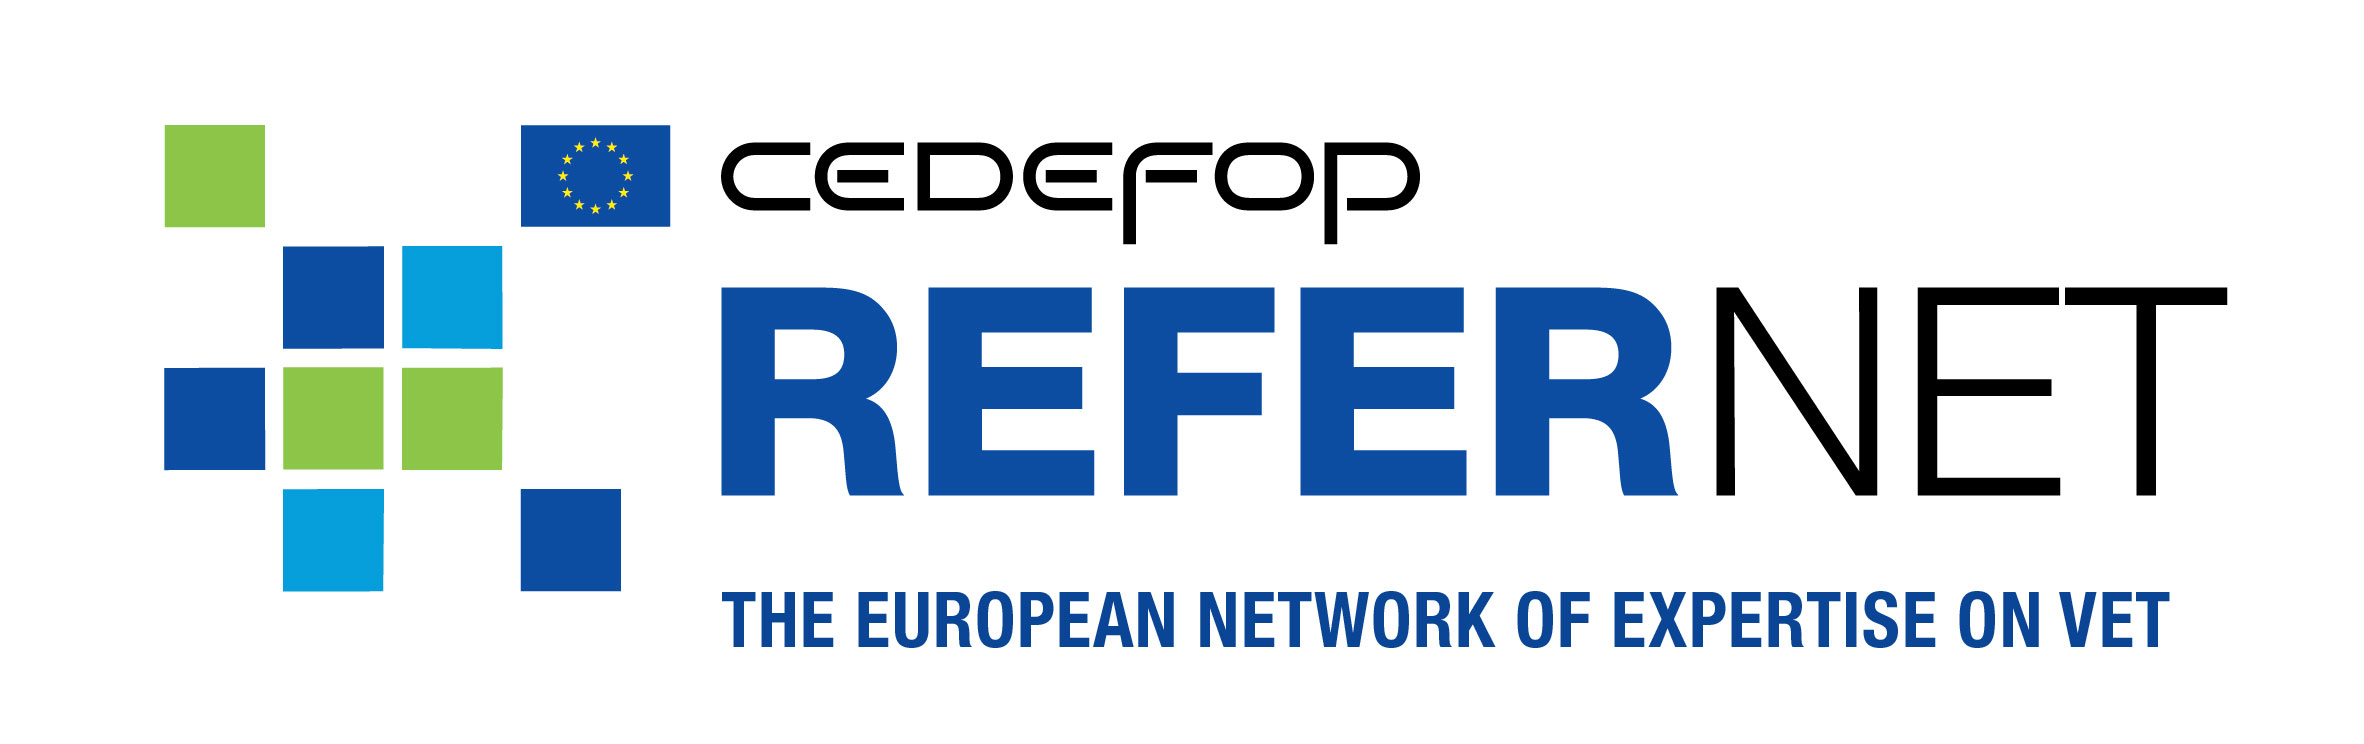 2017_refernet_banner_-_the_european_network_of_expertise_on_vet